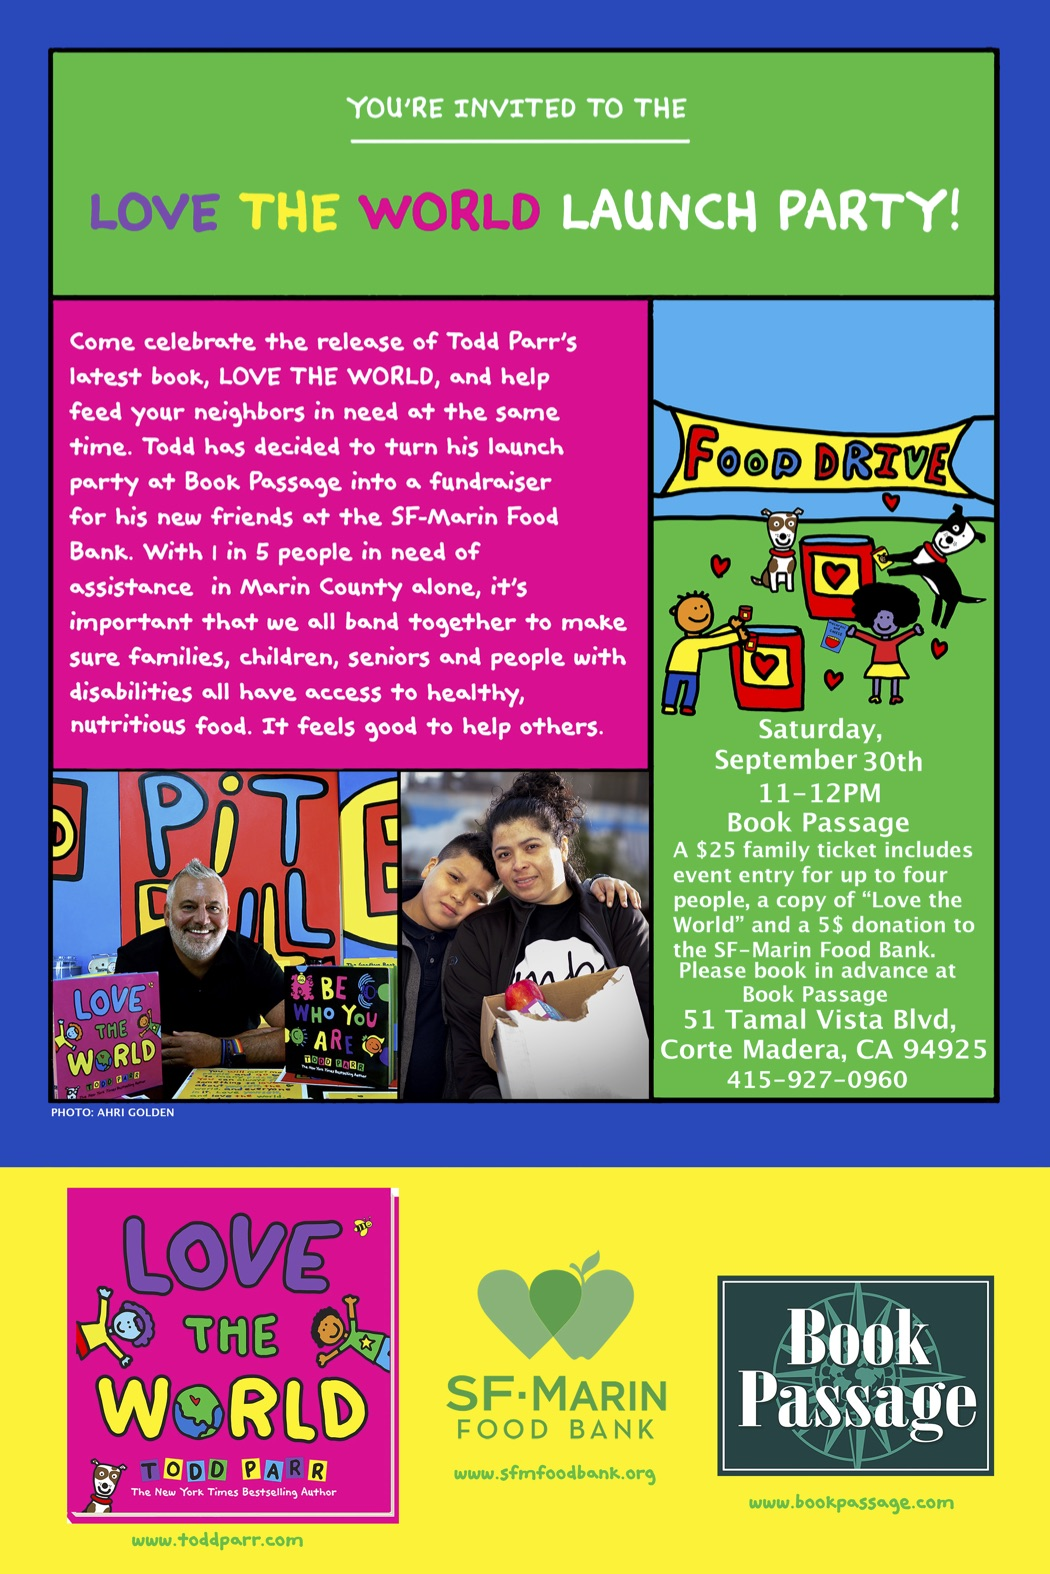 TODD PARR DAY AT THE FOOD BANK